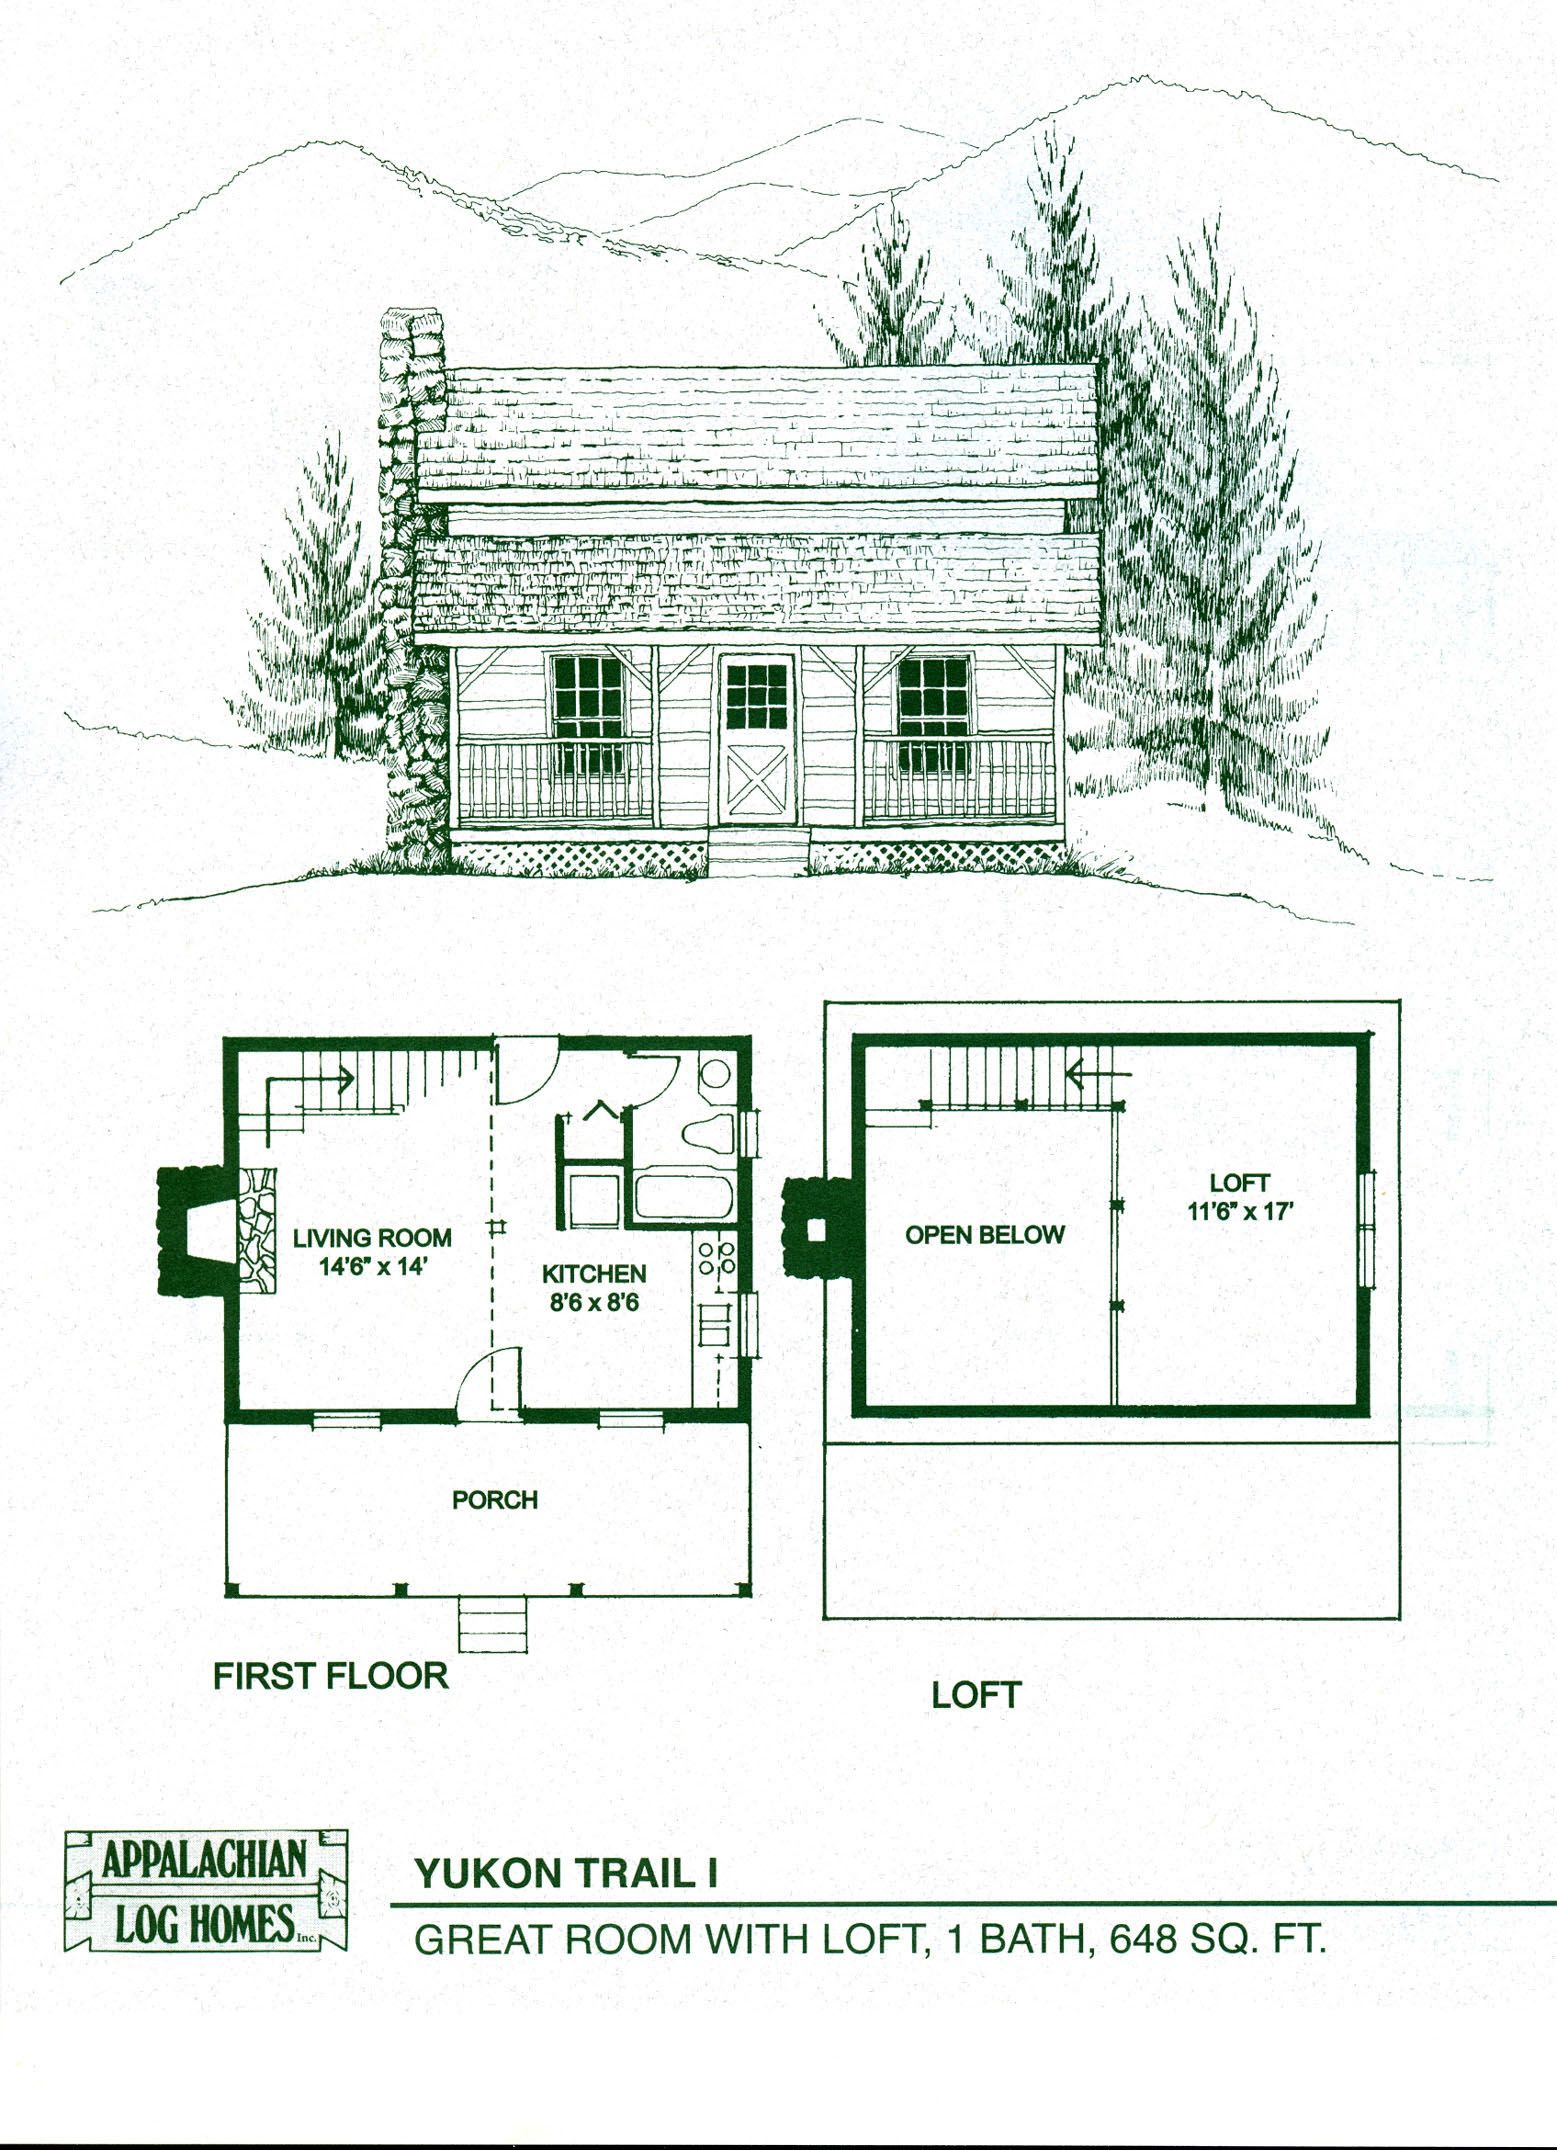 Small Log Cabin Kit Homes Small Log Cabin Floor Plans: Log Home Floor Plans